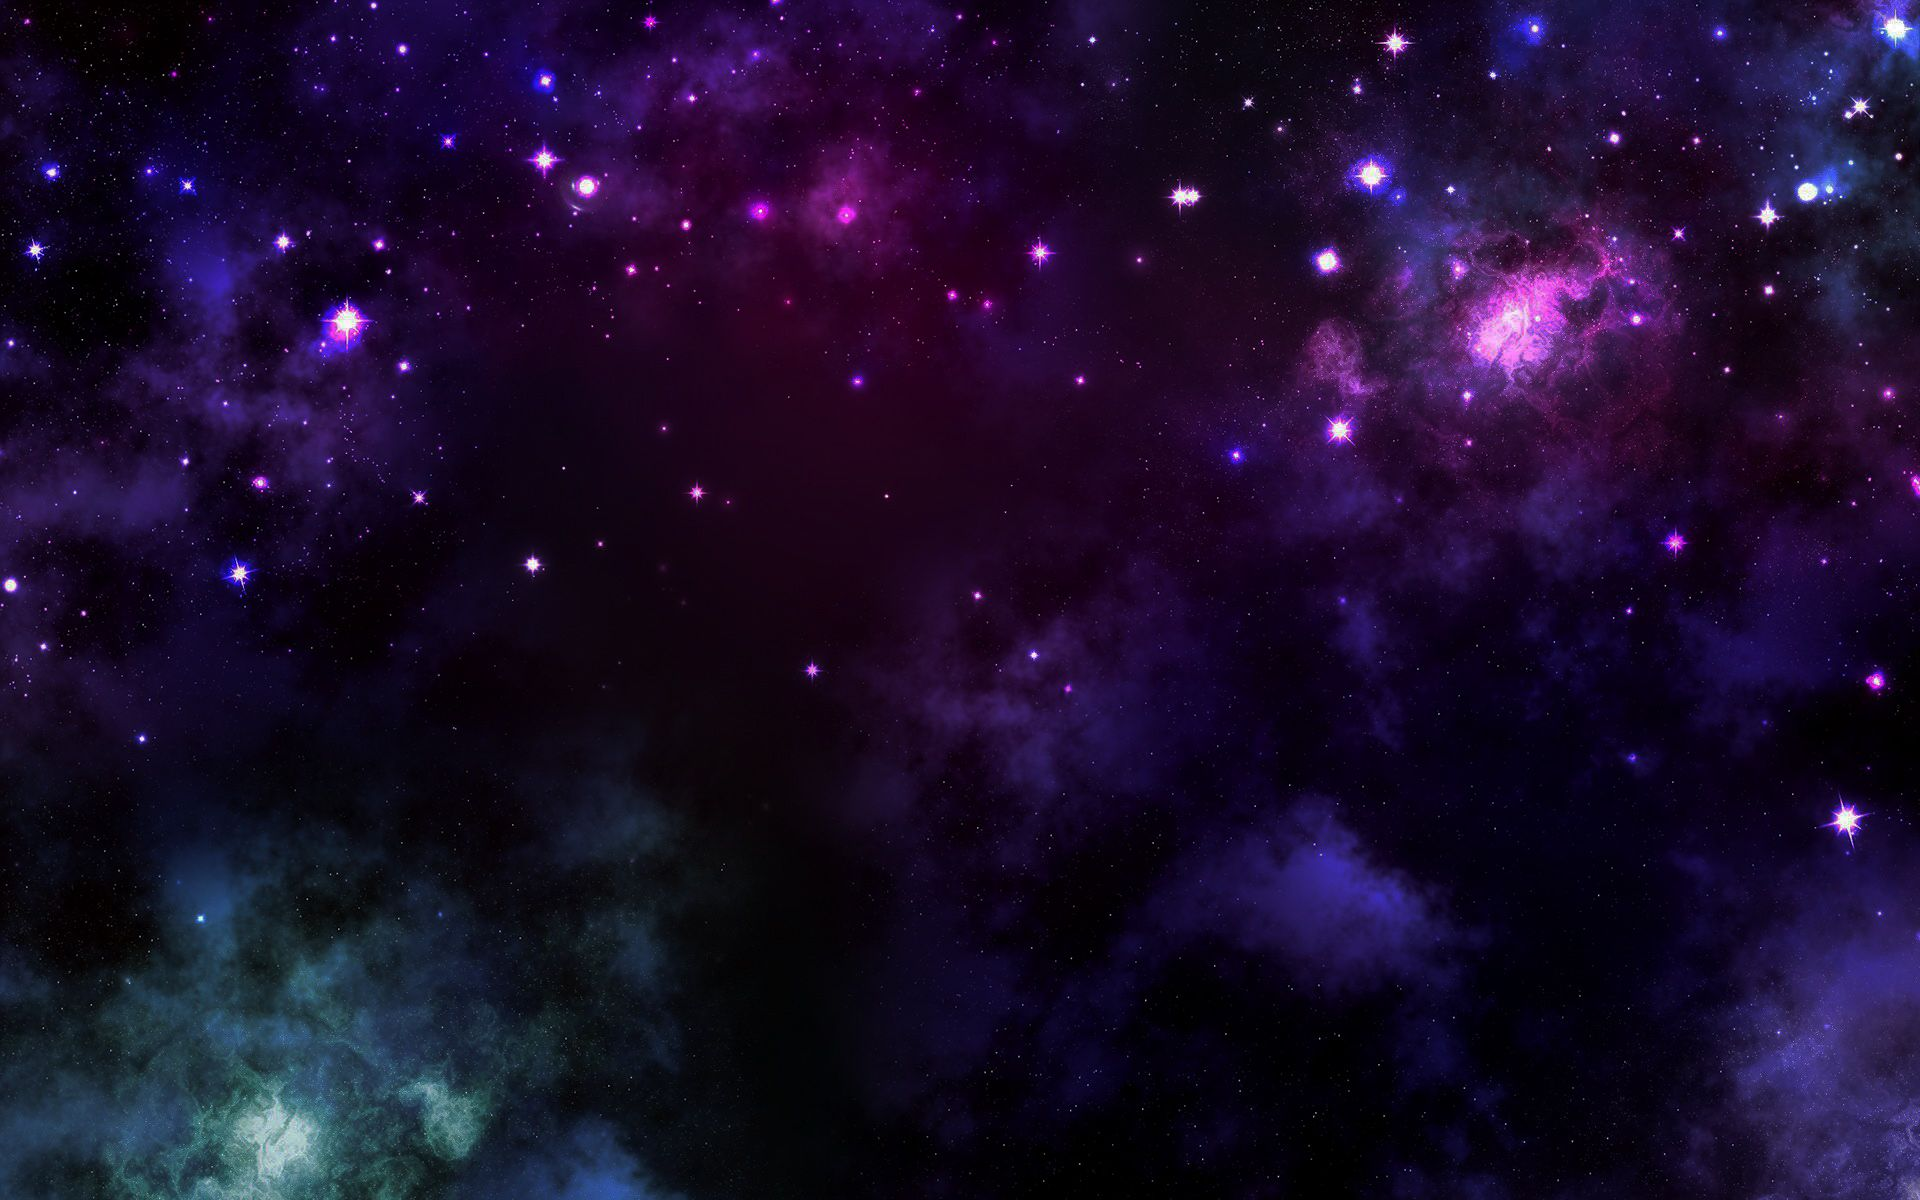 Cool space backgrounds solar system background wallpaper - Space solar system wallpaper ...